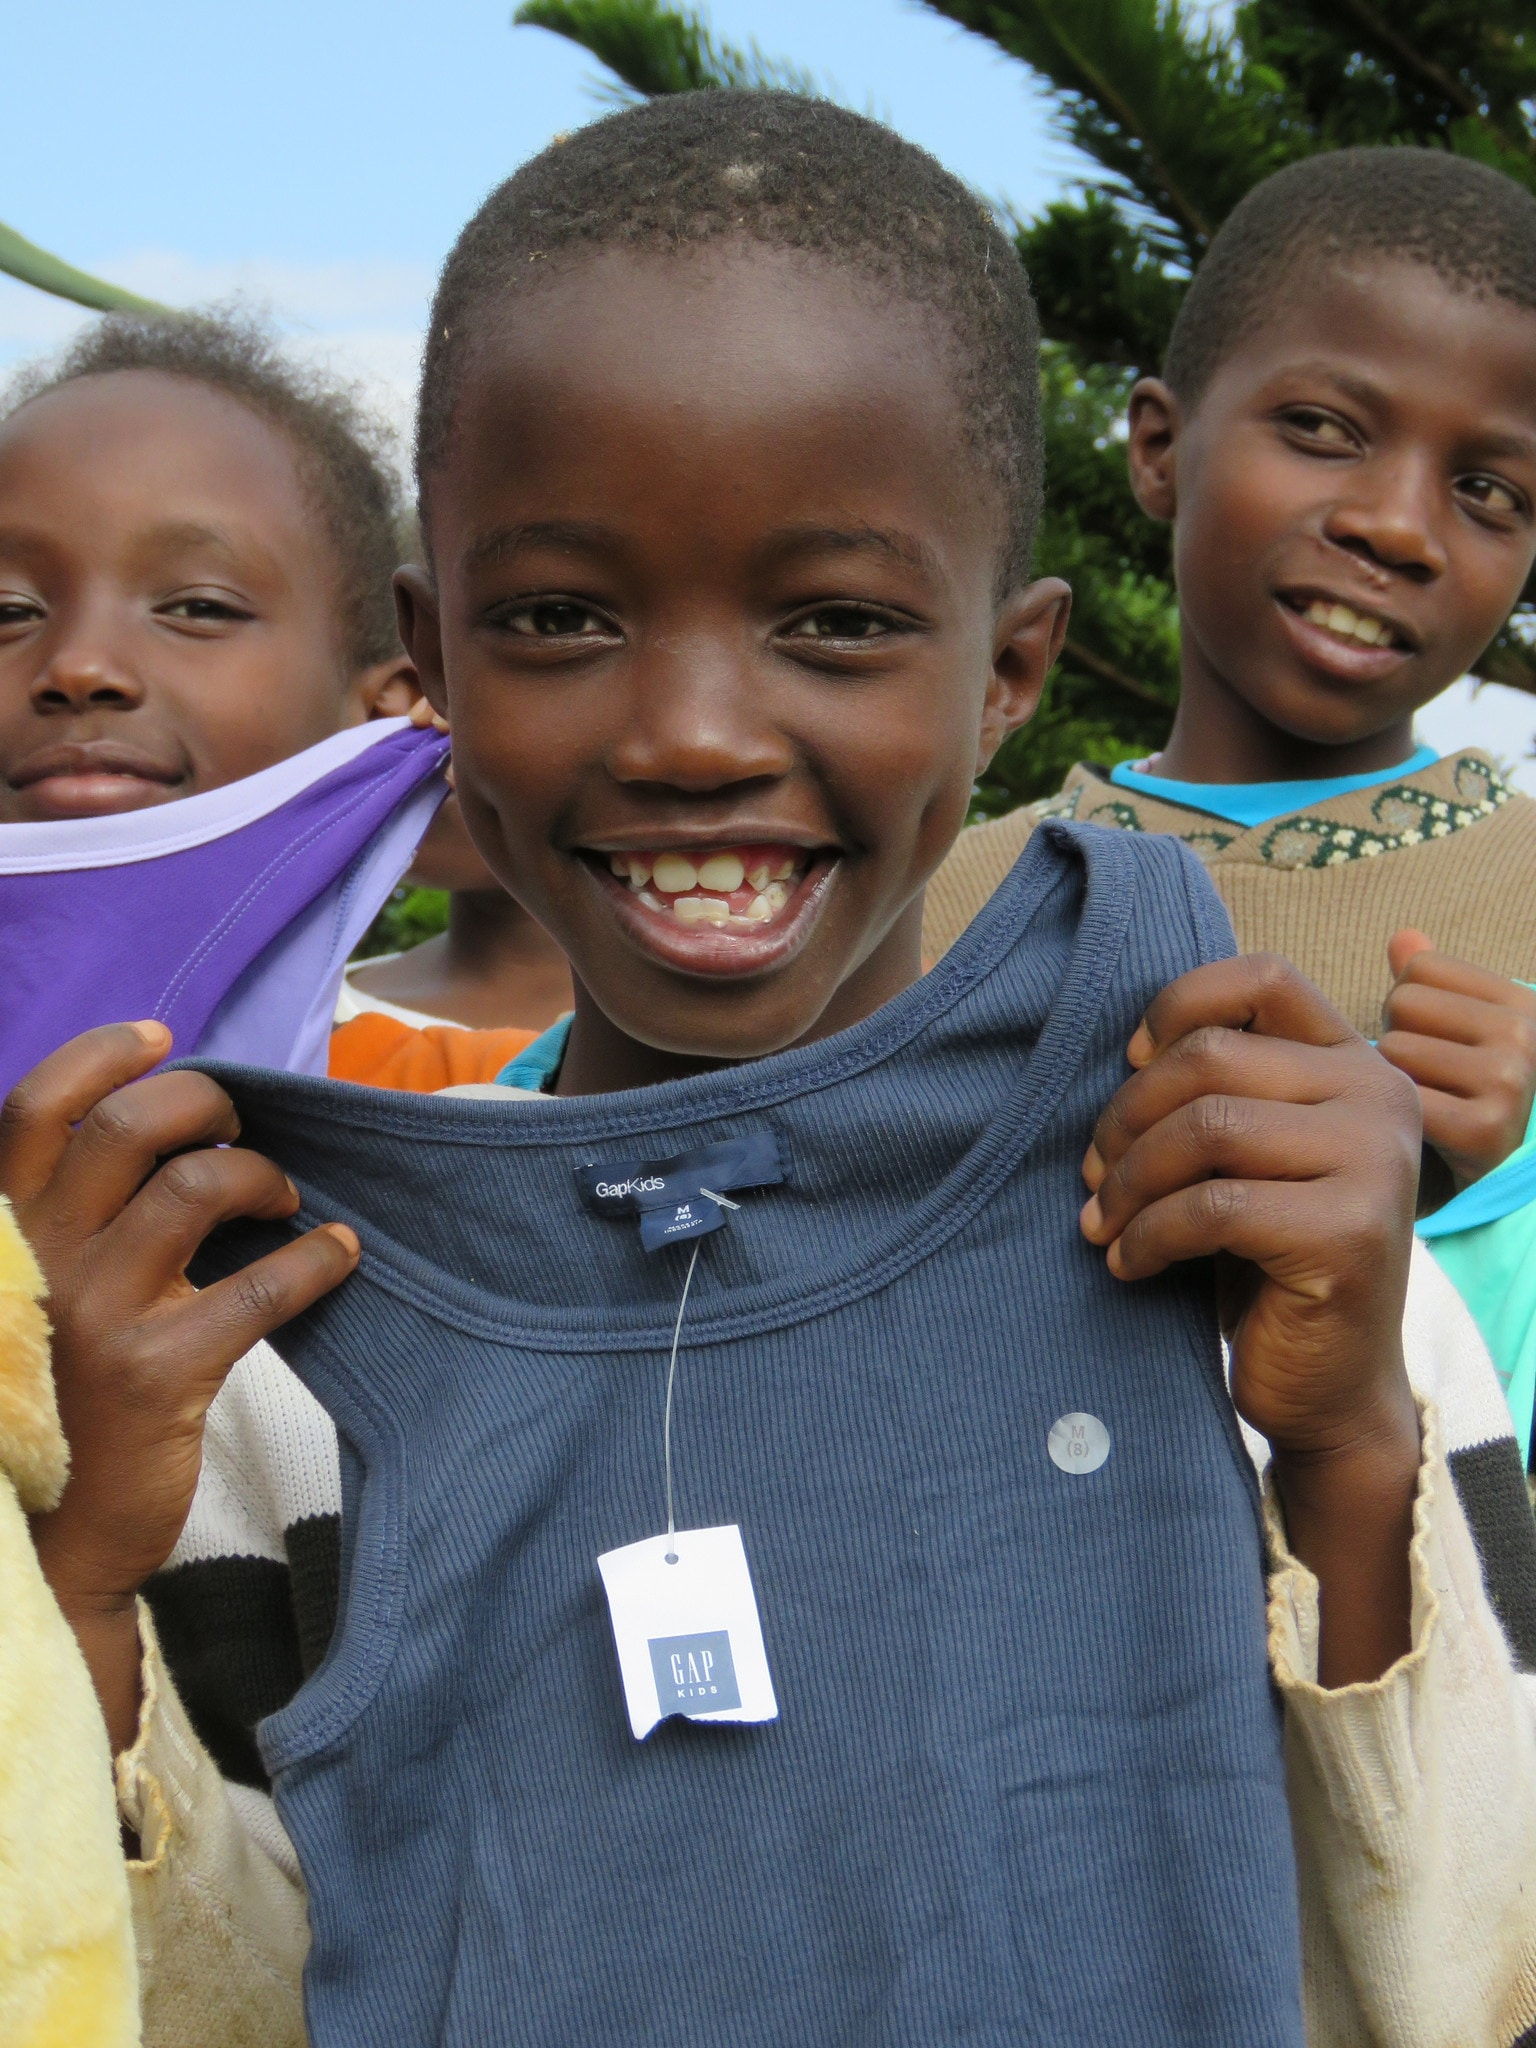 It was amazing to see how happy these children were to get a simple gift of an undershirt or some crayons.